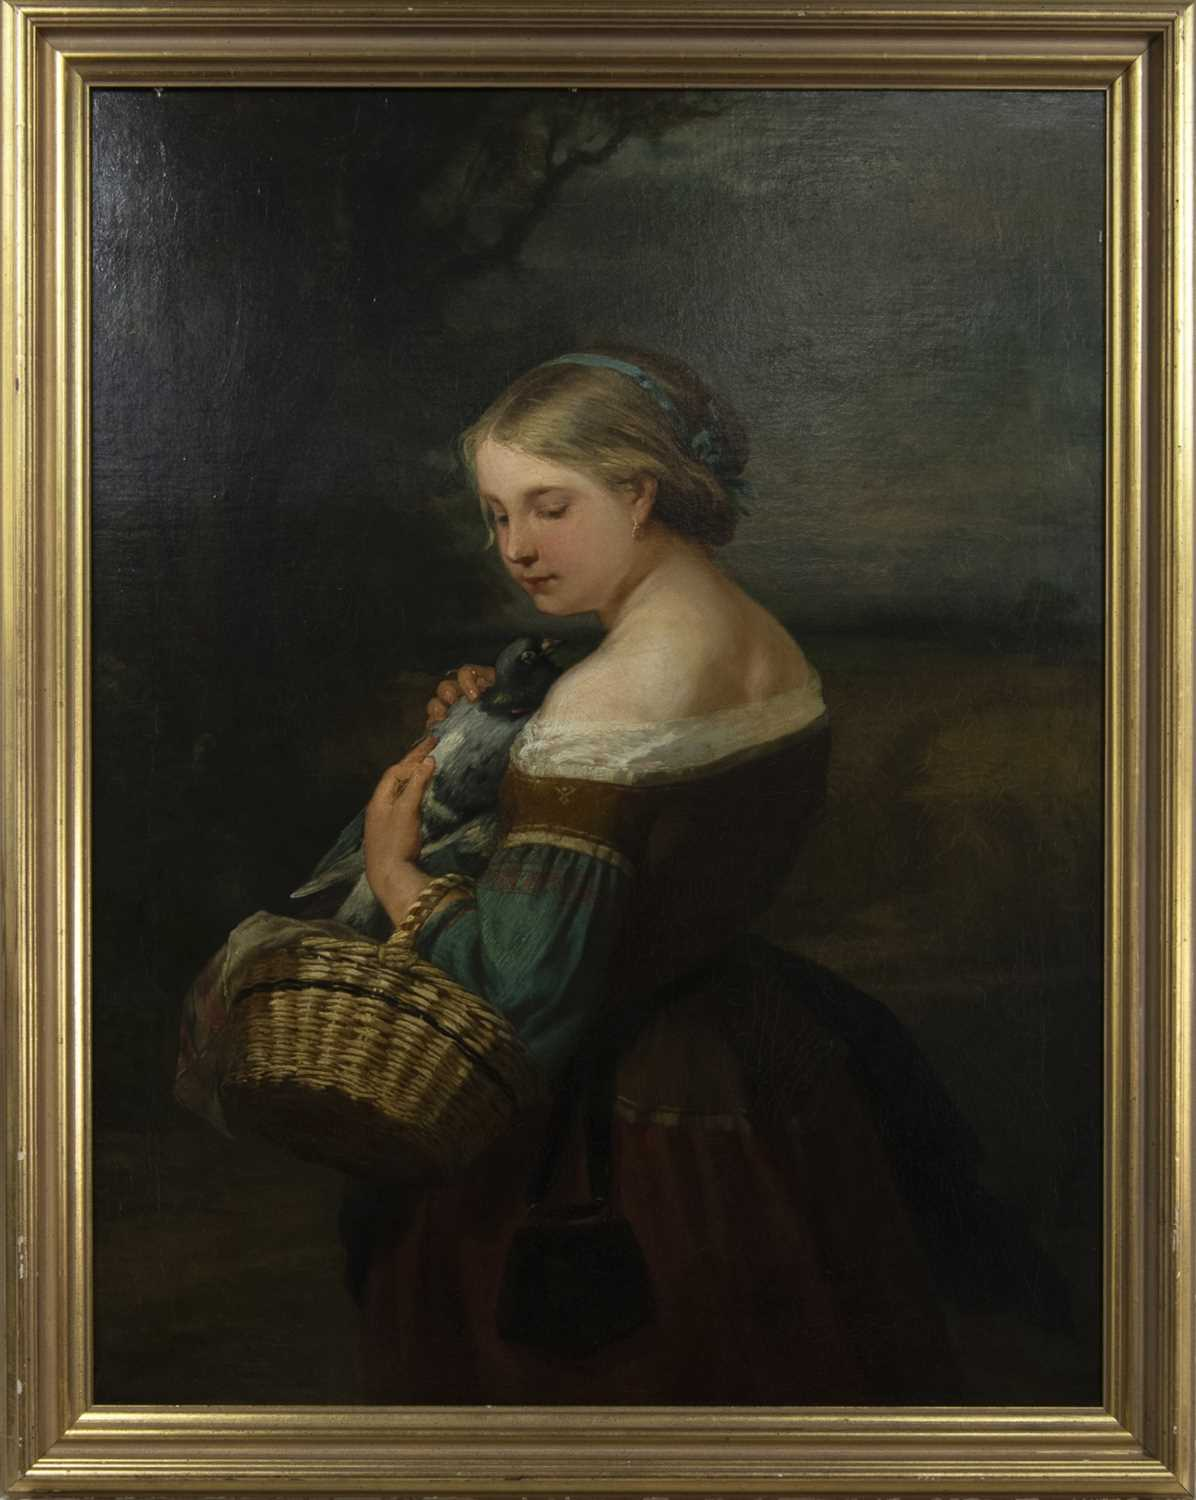 Lot 86 - PORTRAIT OF A PEASANT GIRL WITH A PIGEON, AN OIL BY CARL WAGNER